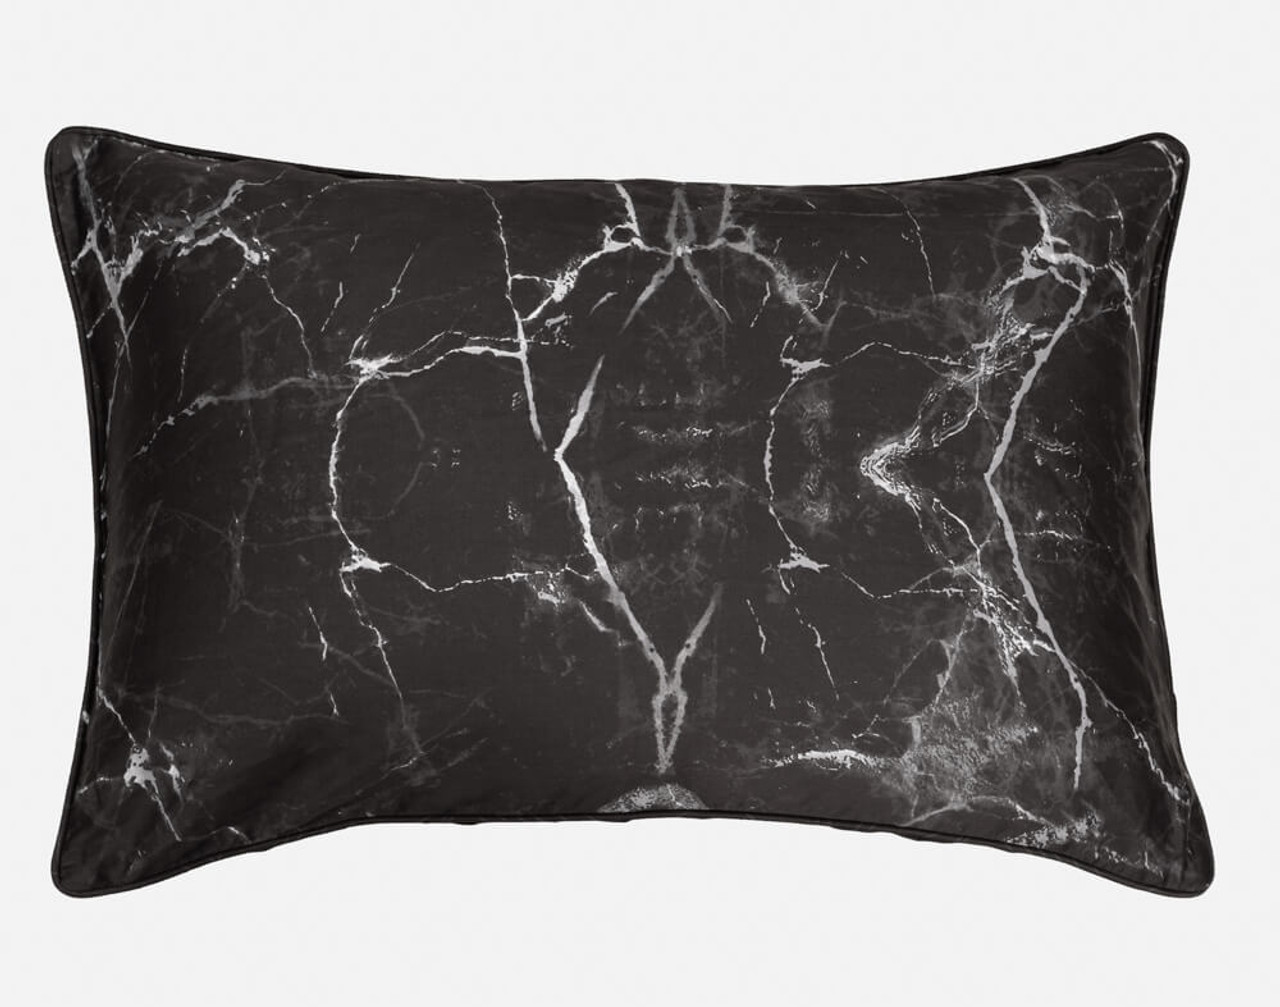 Inkstone Pillow Sham features a marbled pattern on a black background.